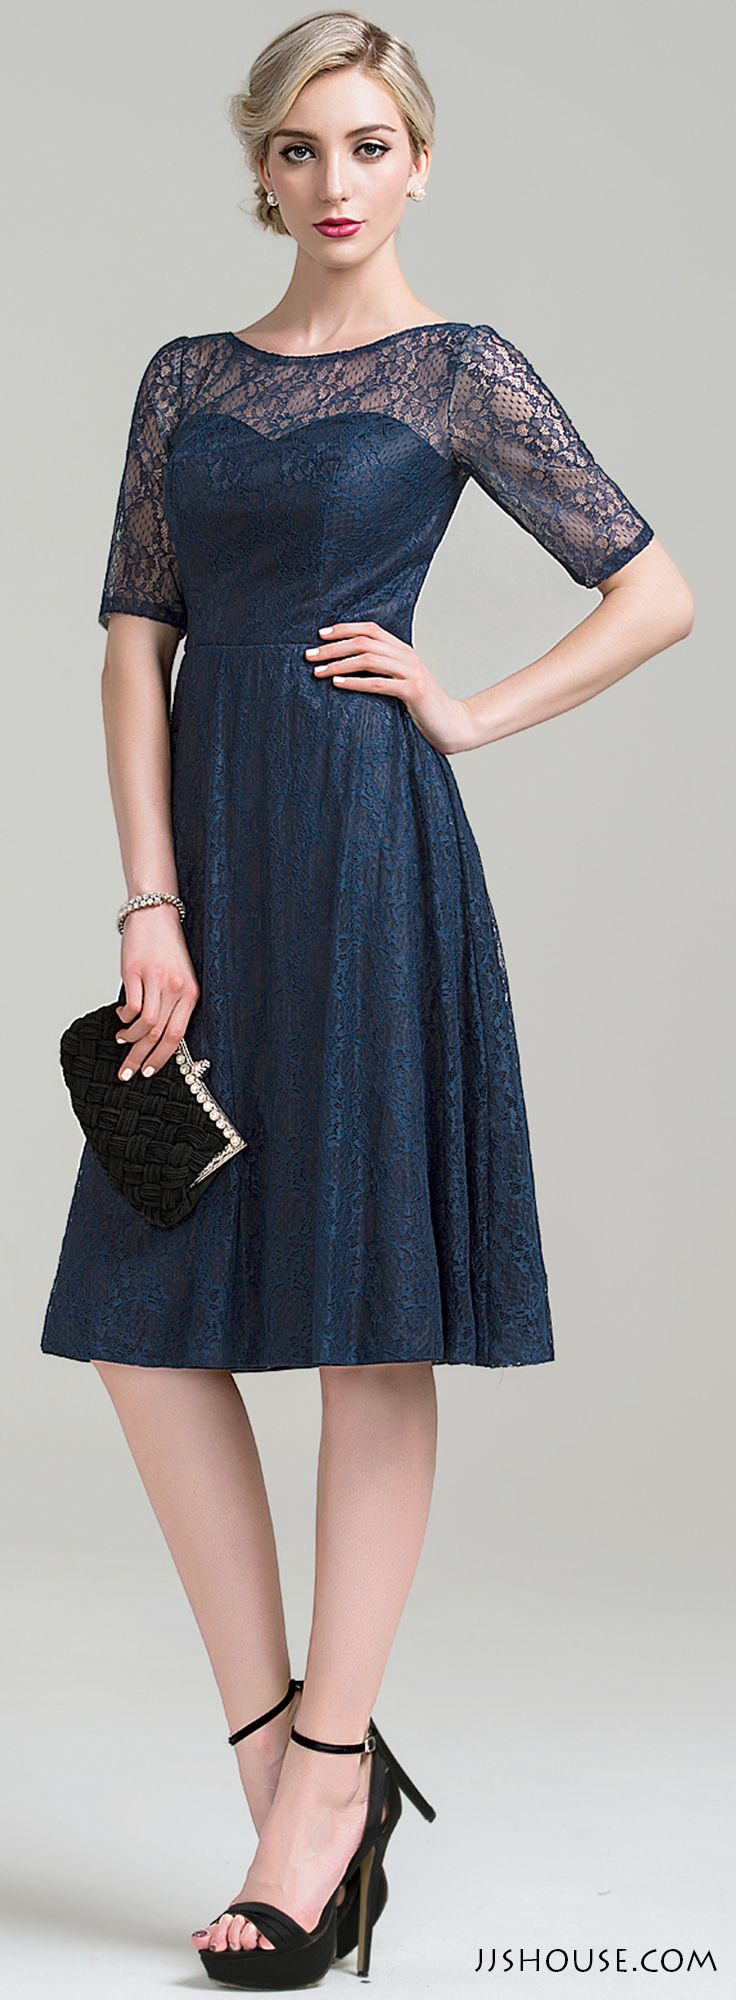 Simple All Over Lace Knee Length Dress Perfect For Any